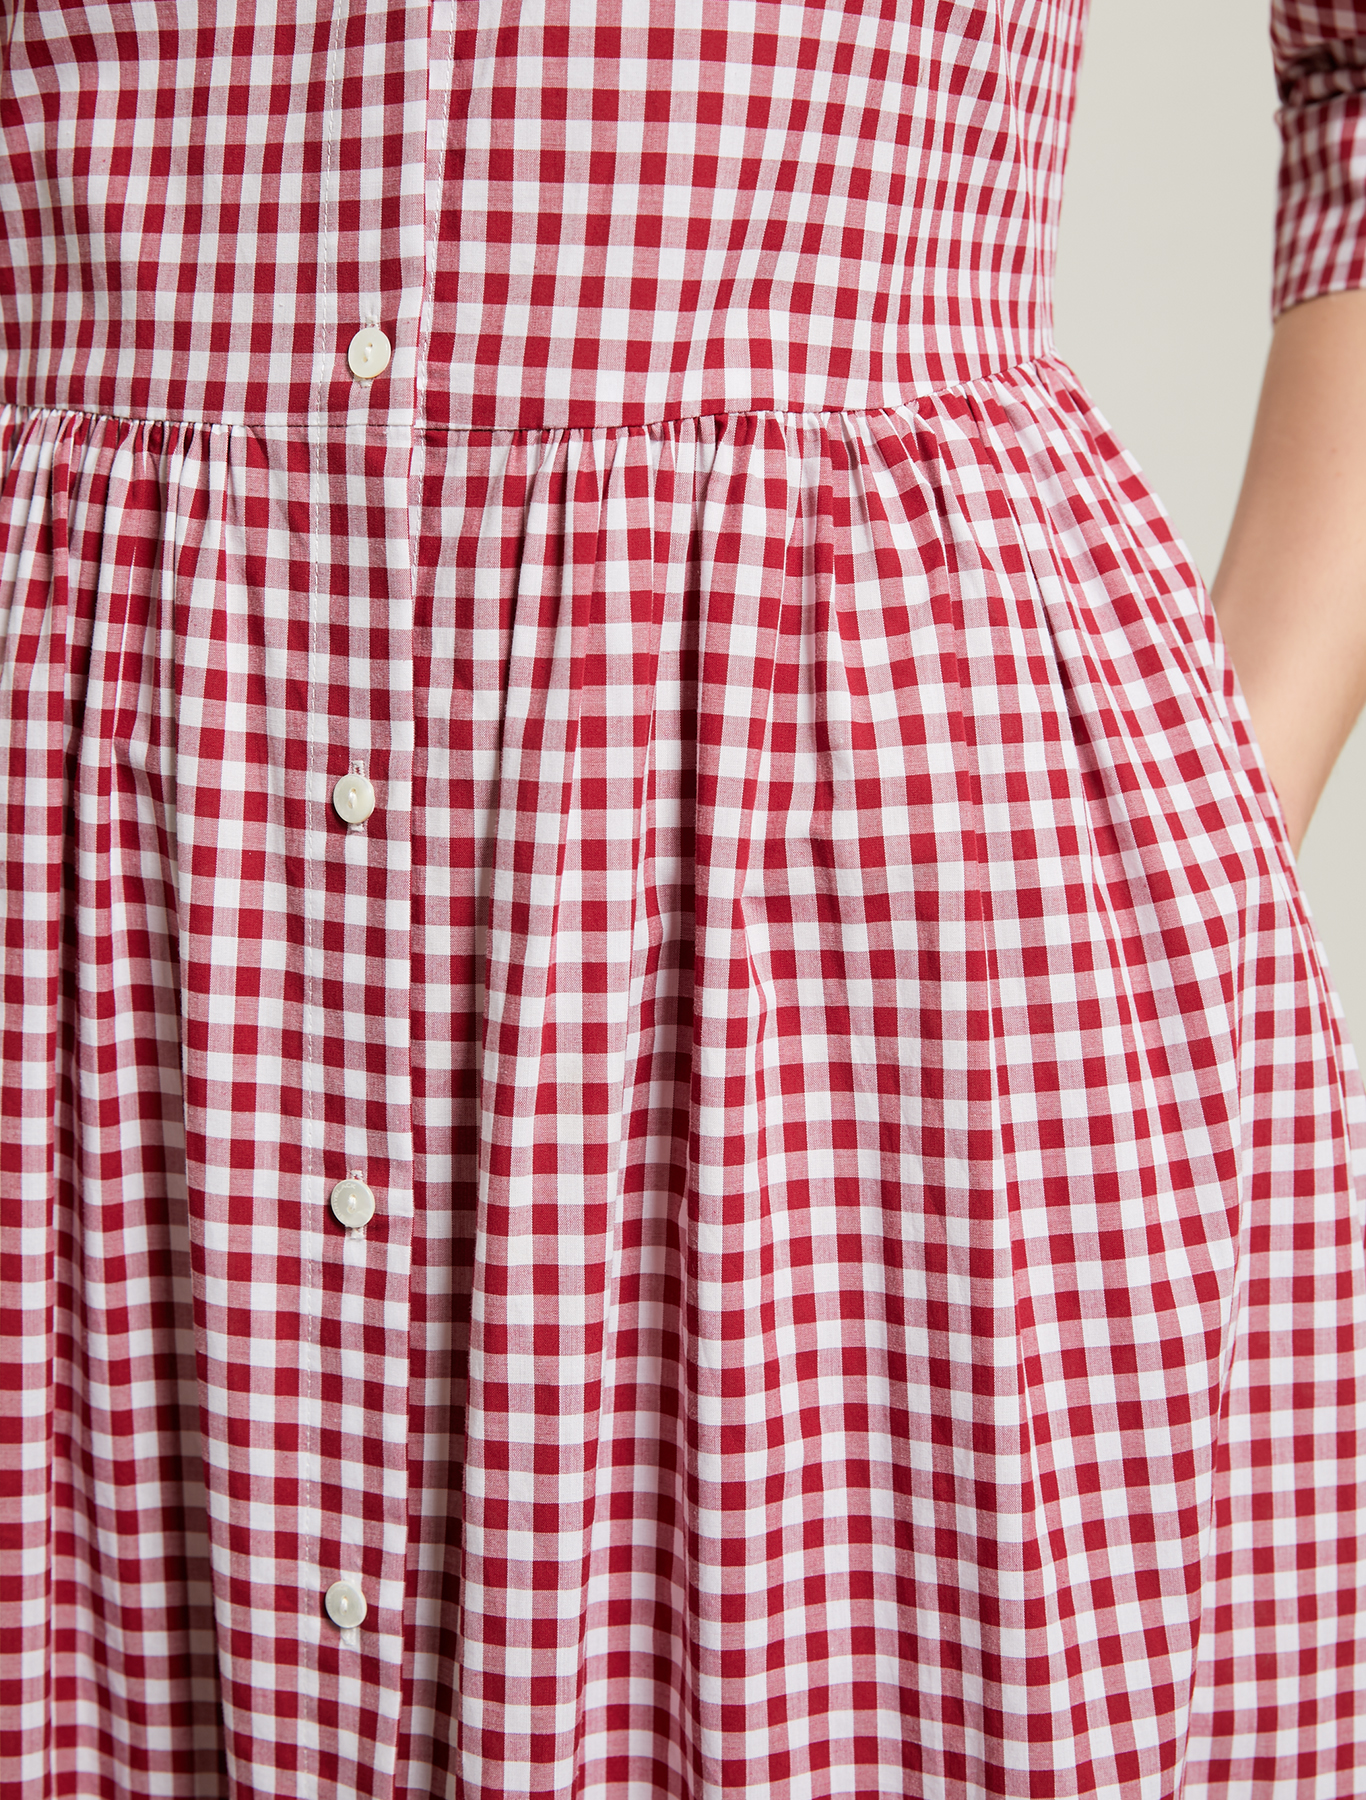 Gingham check shirt dress - fuchsia pattern - pennyblack